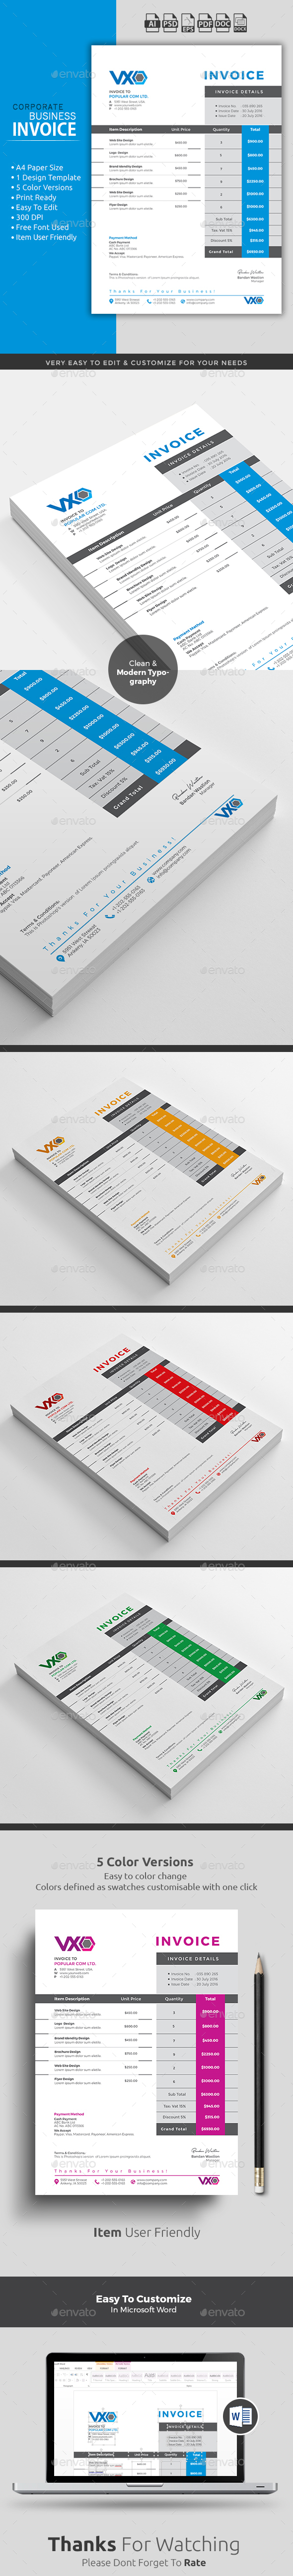 proposal template for word%0A Clean Invoice Word Template    color versions  Quick and easy to customize  templates